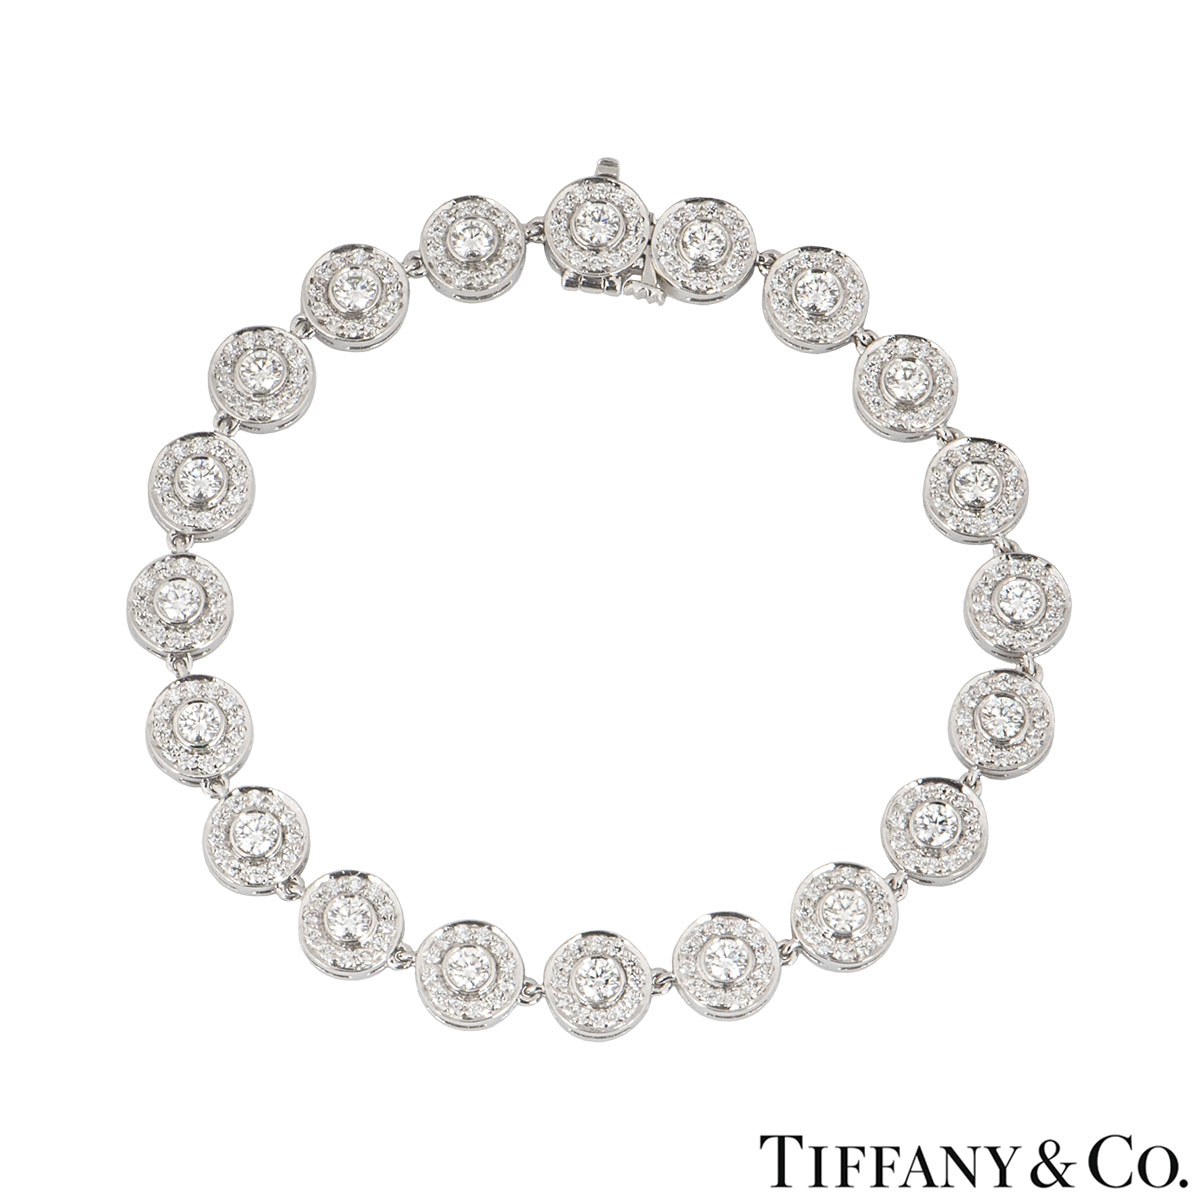 Tiffany & Co. Platinum Diamond Circlet Bracelet